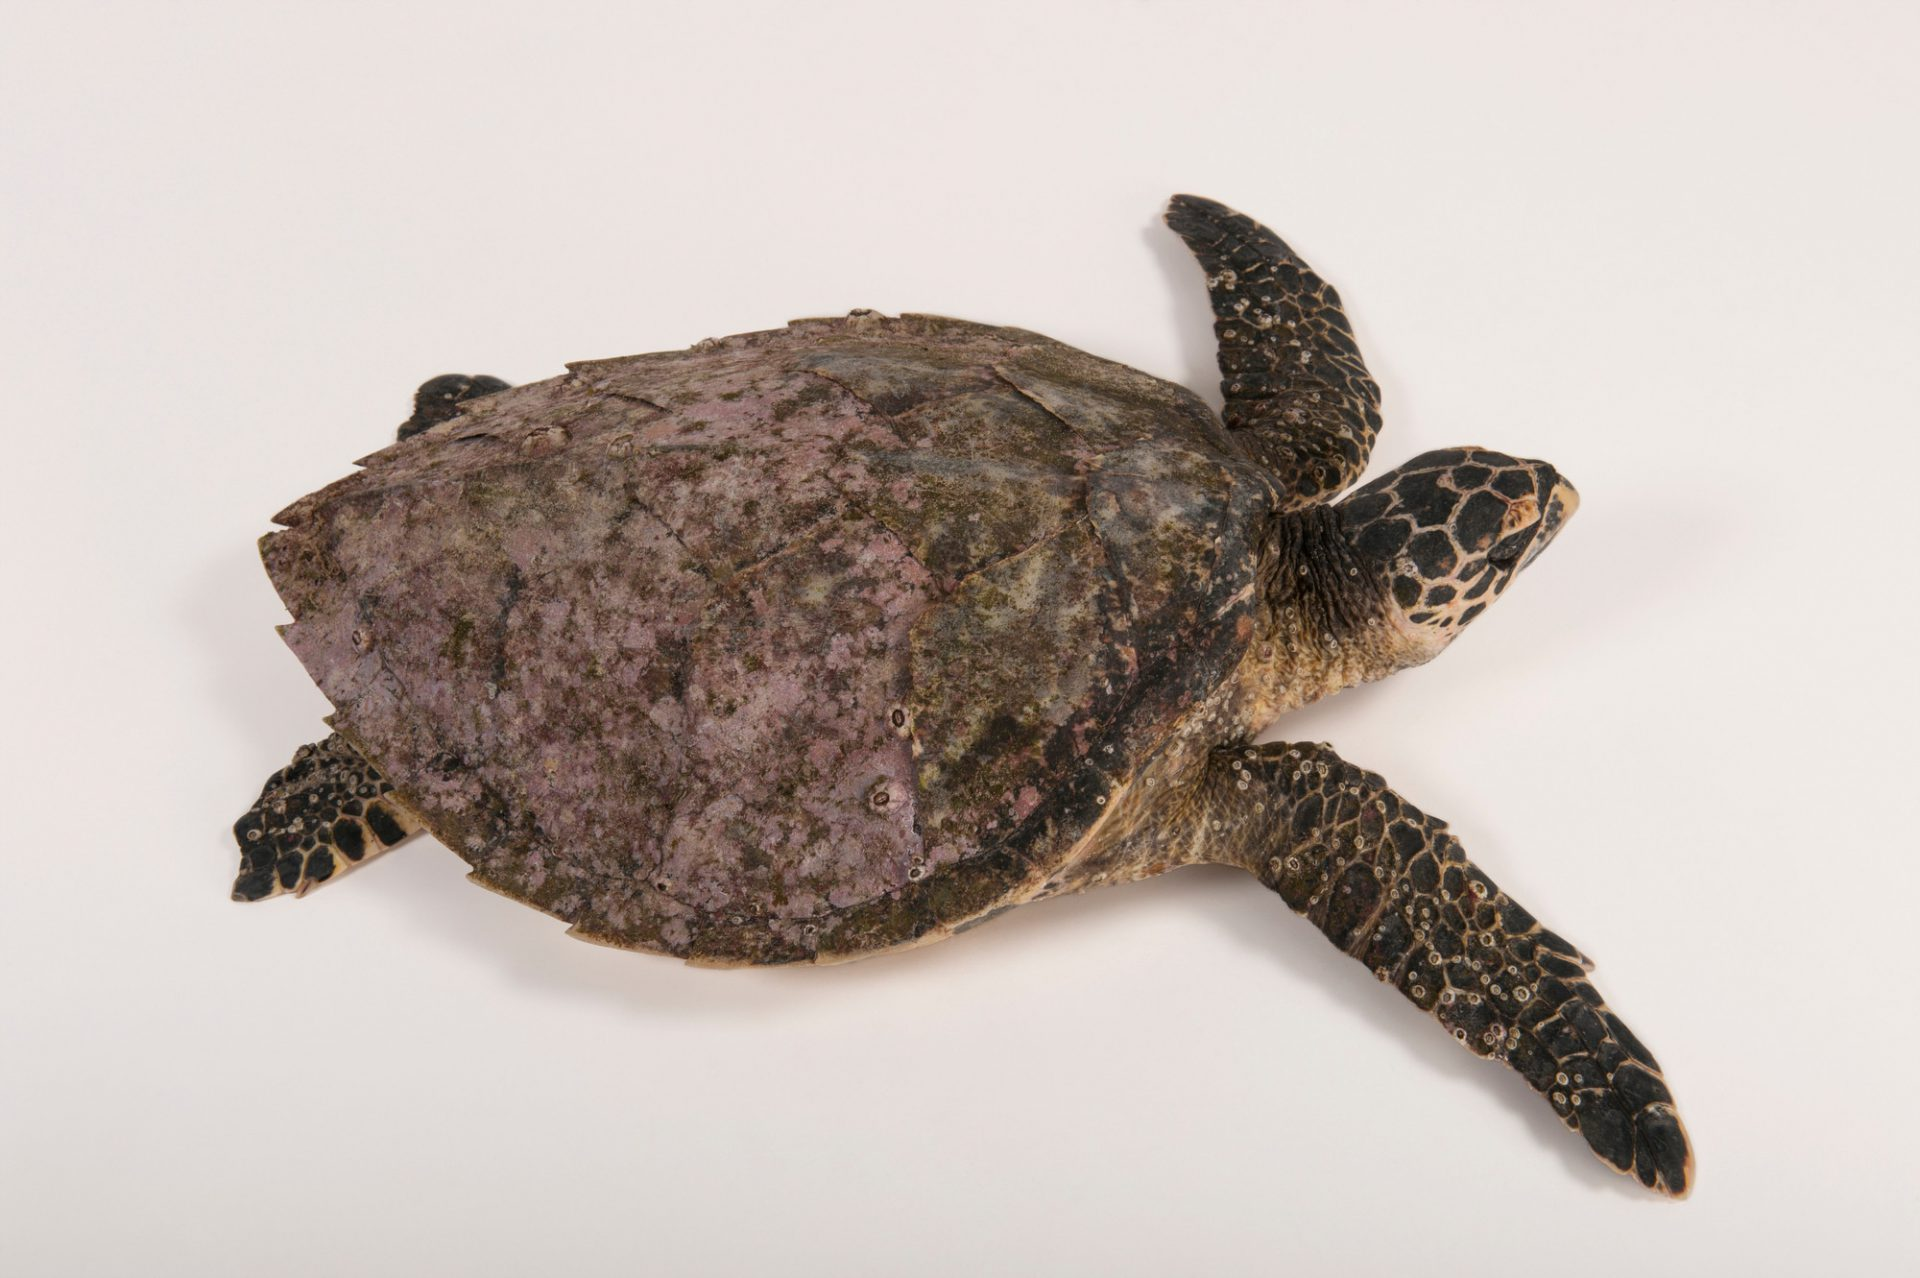 A very ill, critically endangered (IUCN) and federally endangered Hawksbill sea turtle (Eretmochelys imbricata) at the Australia Zoo Wildlife Hospital.